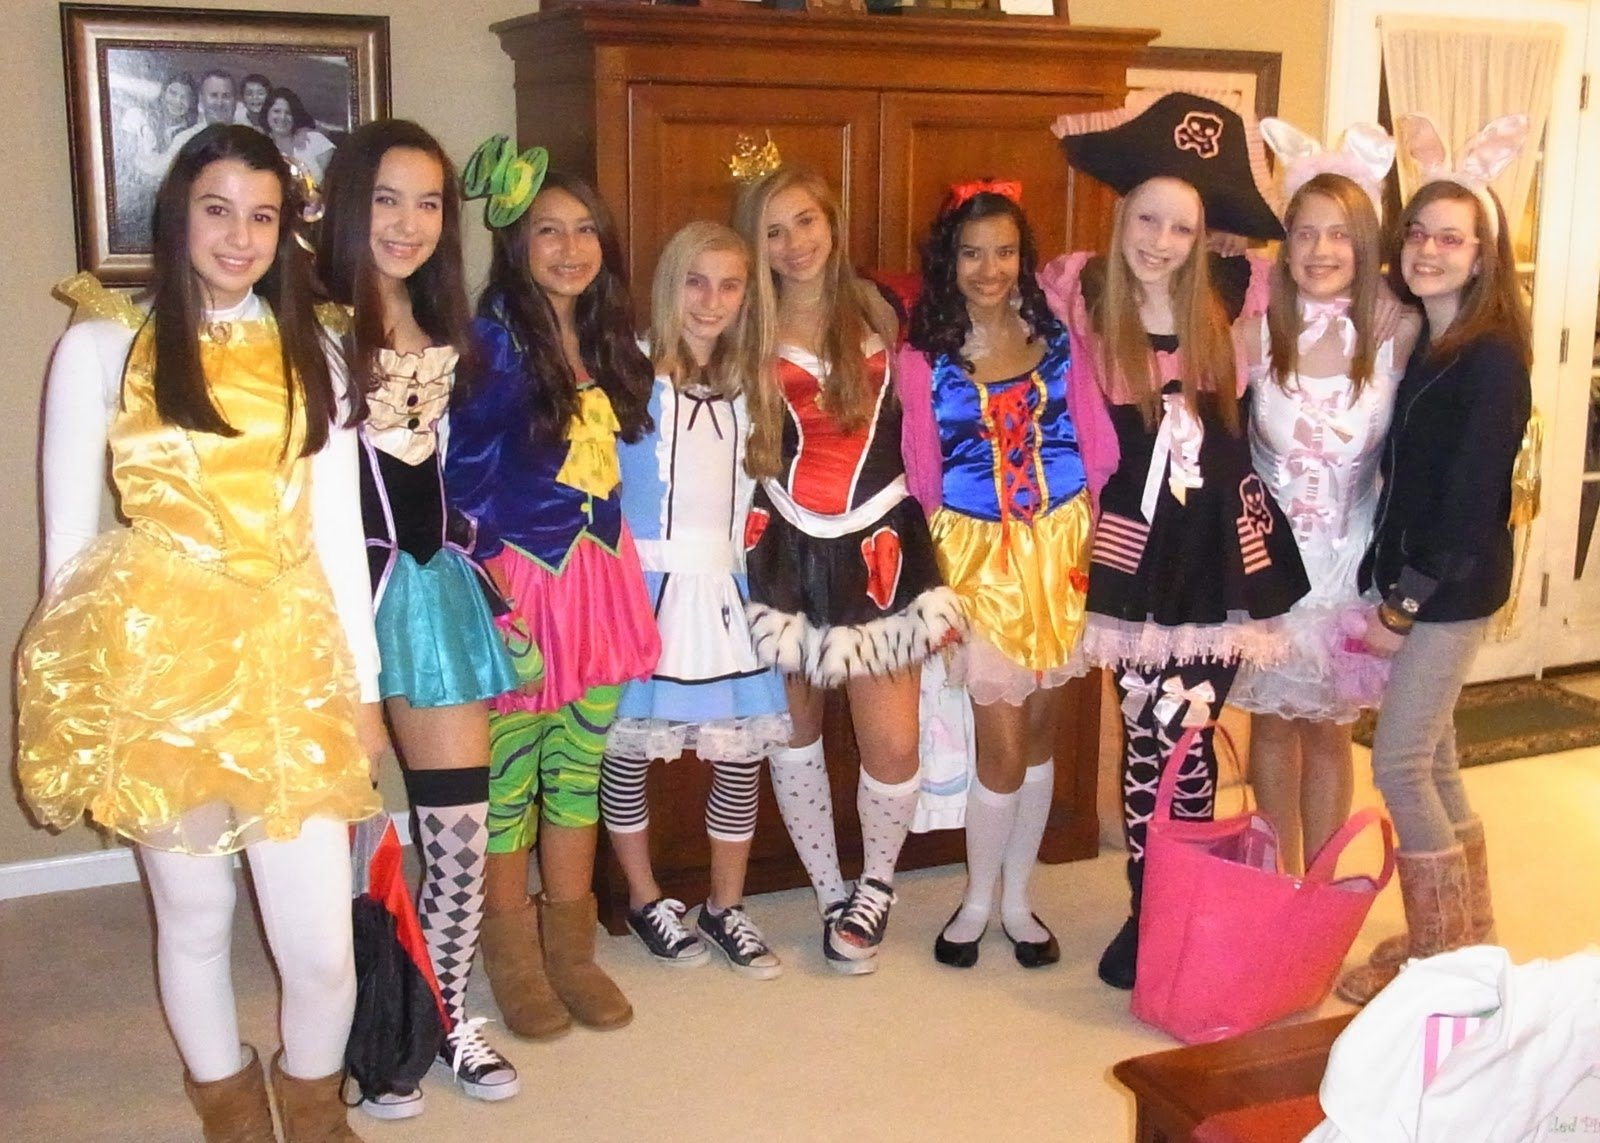 10 Pretty Group Costume Ideas For 6 pinflankkks on cool halloween outfits pinterest 3 2020